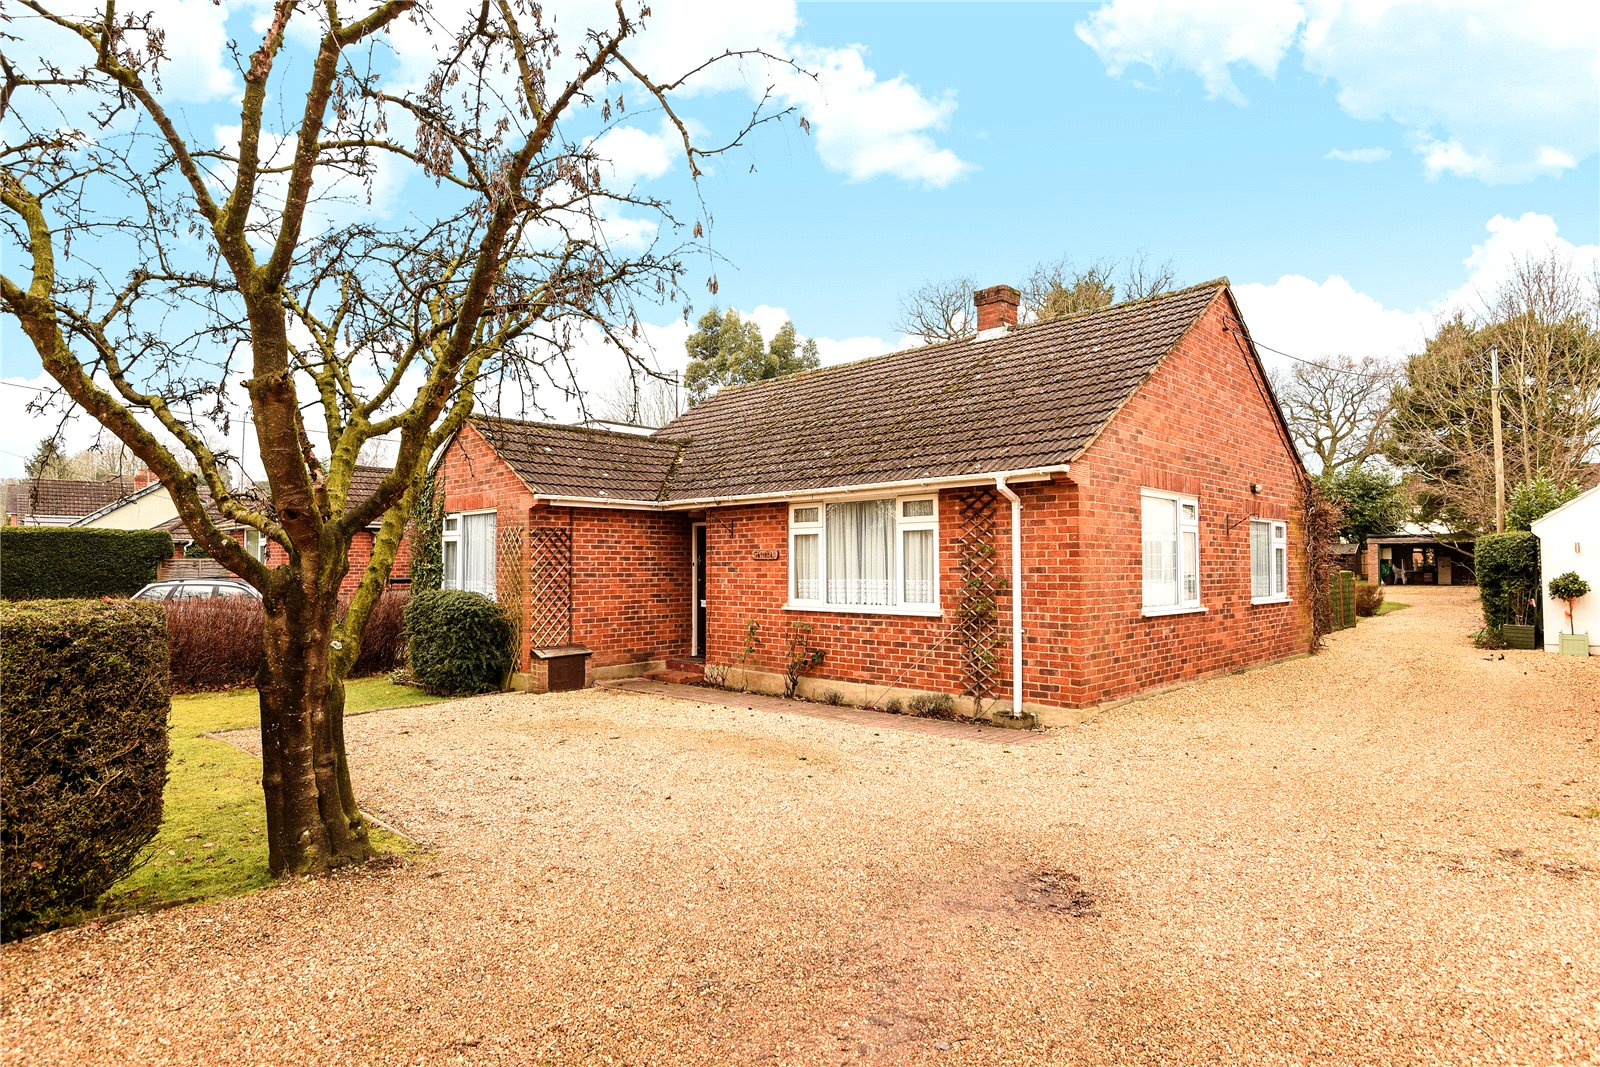 4 Bedrooms Detached Bungalow for sale in Barkham Road, Wokingham, Berkshire, RG41